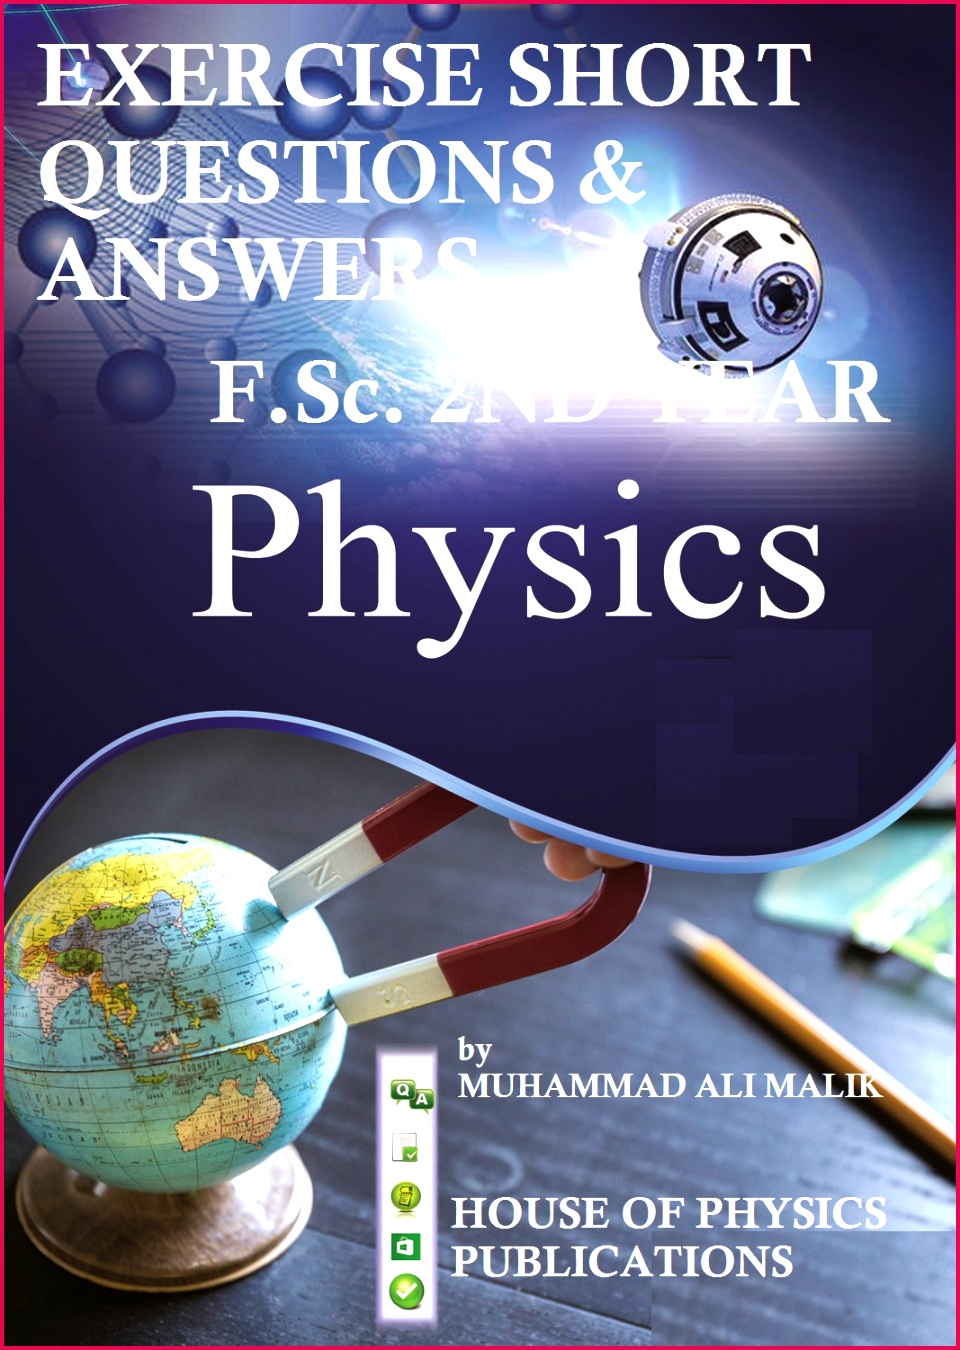 CLICK HERE TO BE E A MEMBER OF HOUSE OF PHYSICS